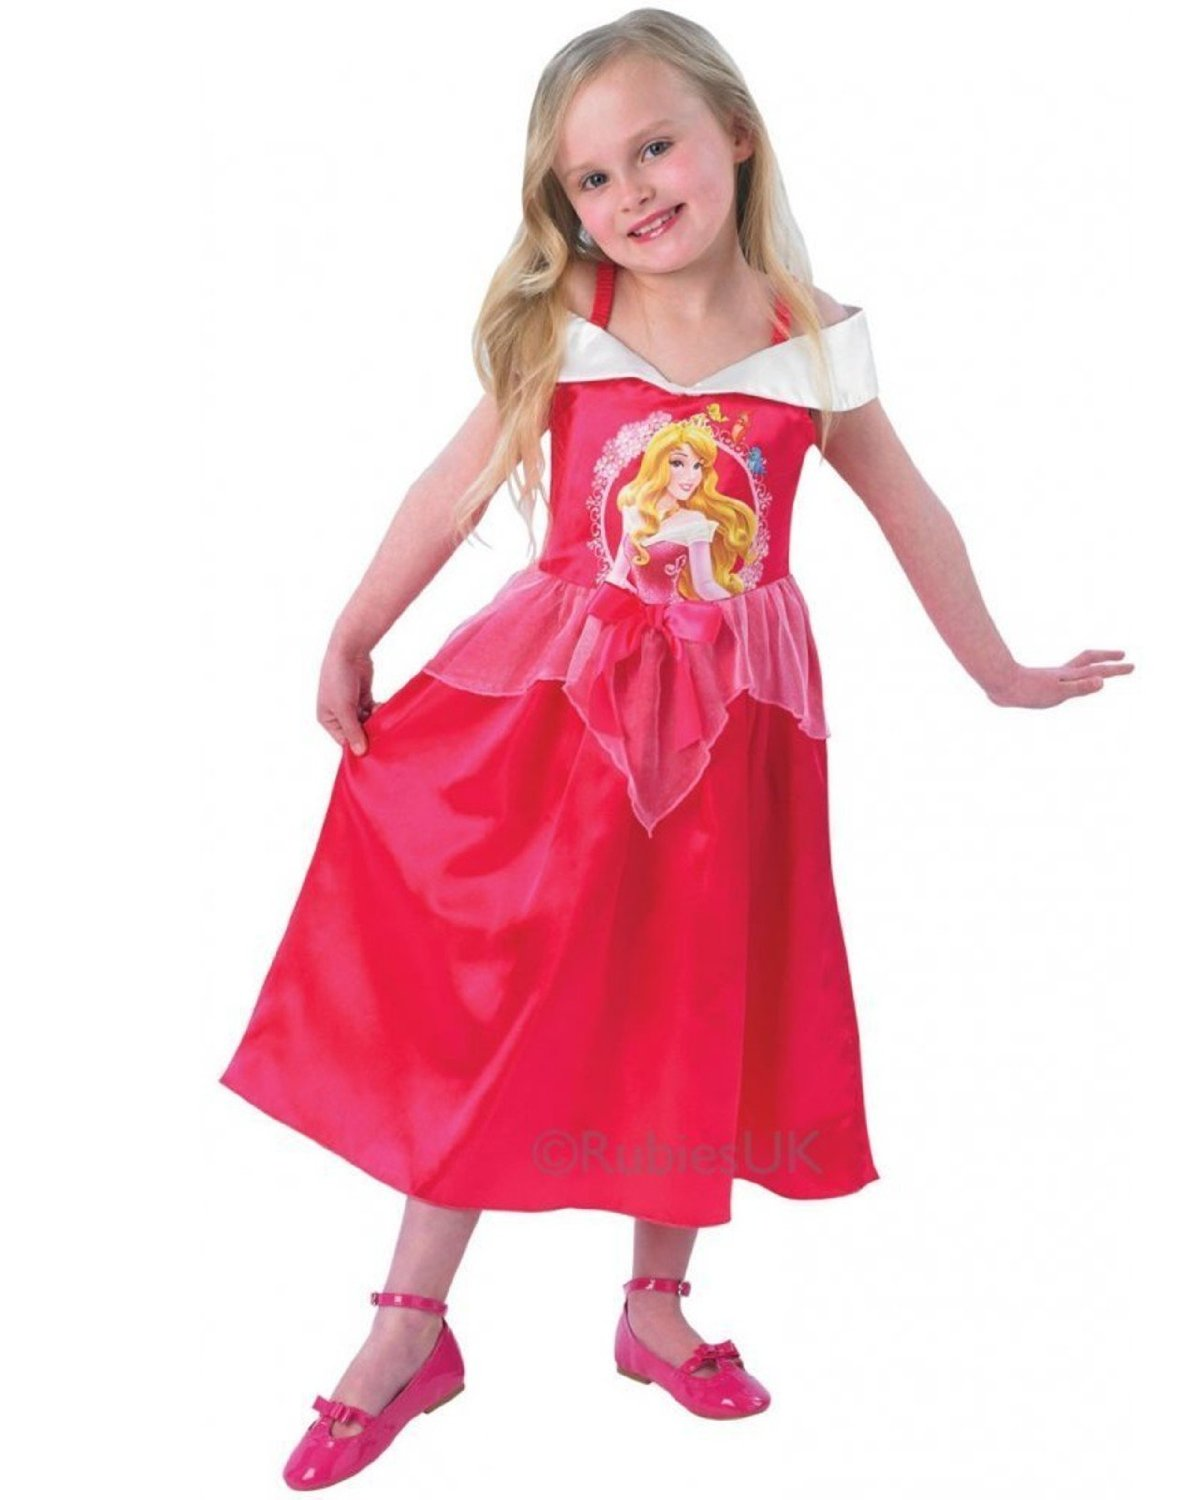 Disney Sleeping Beauty costume 889553